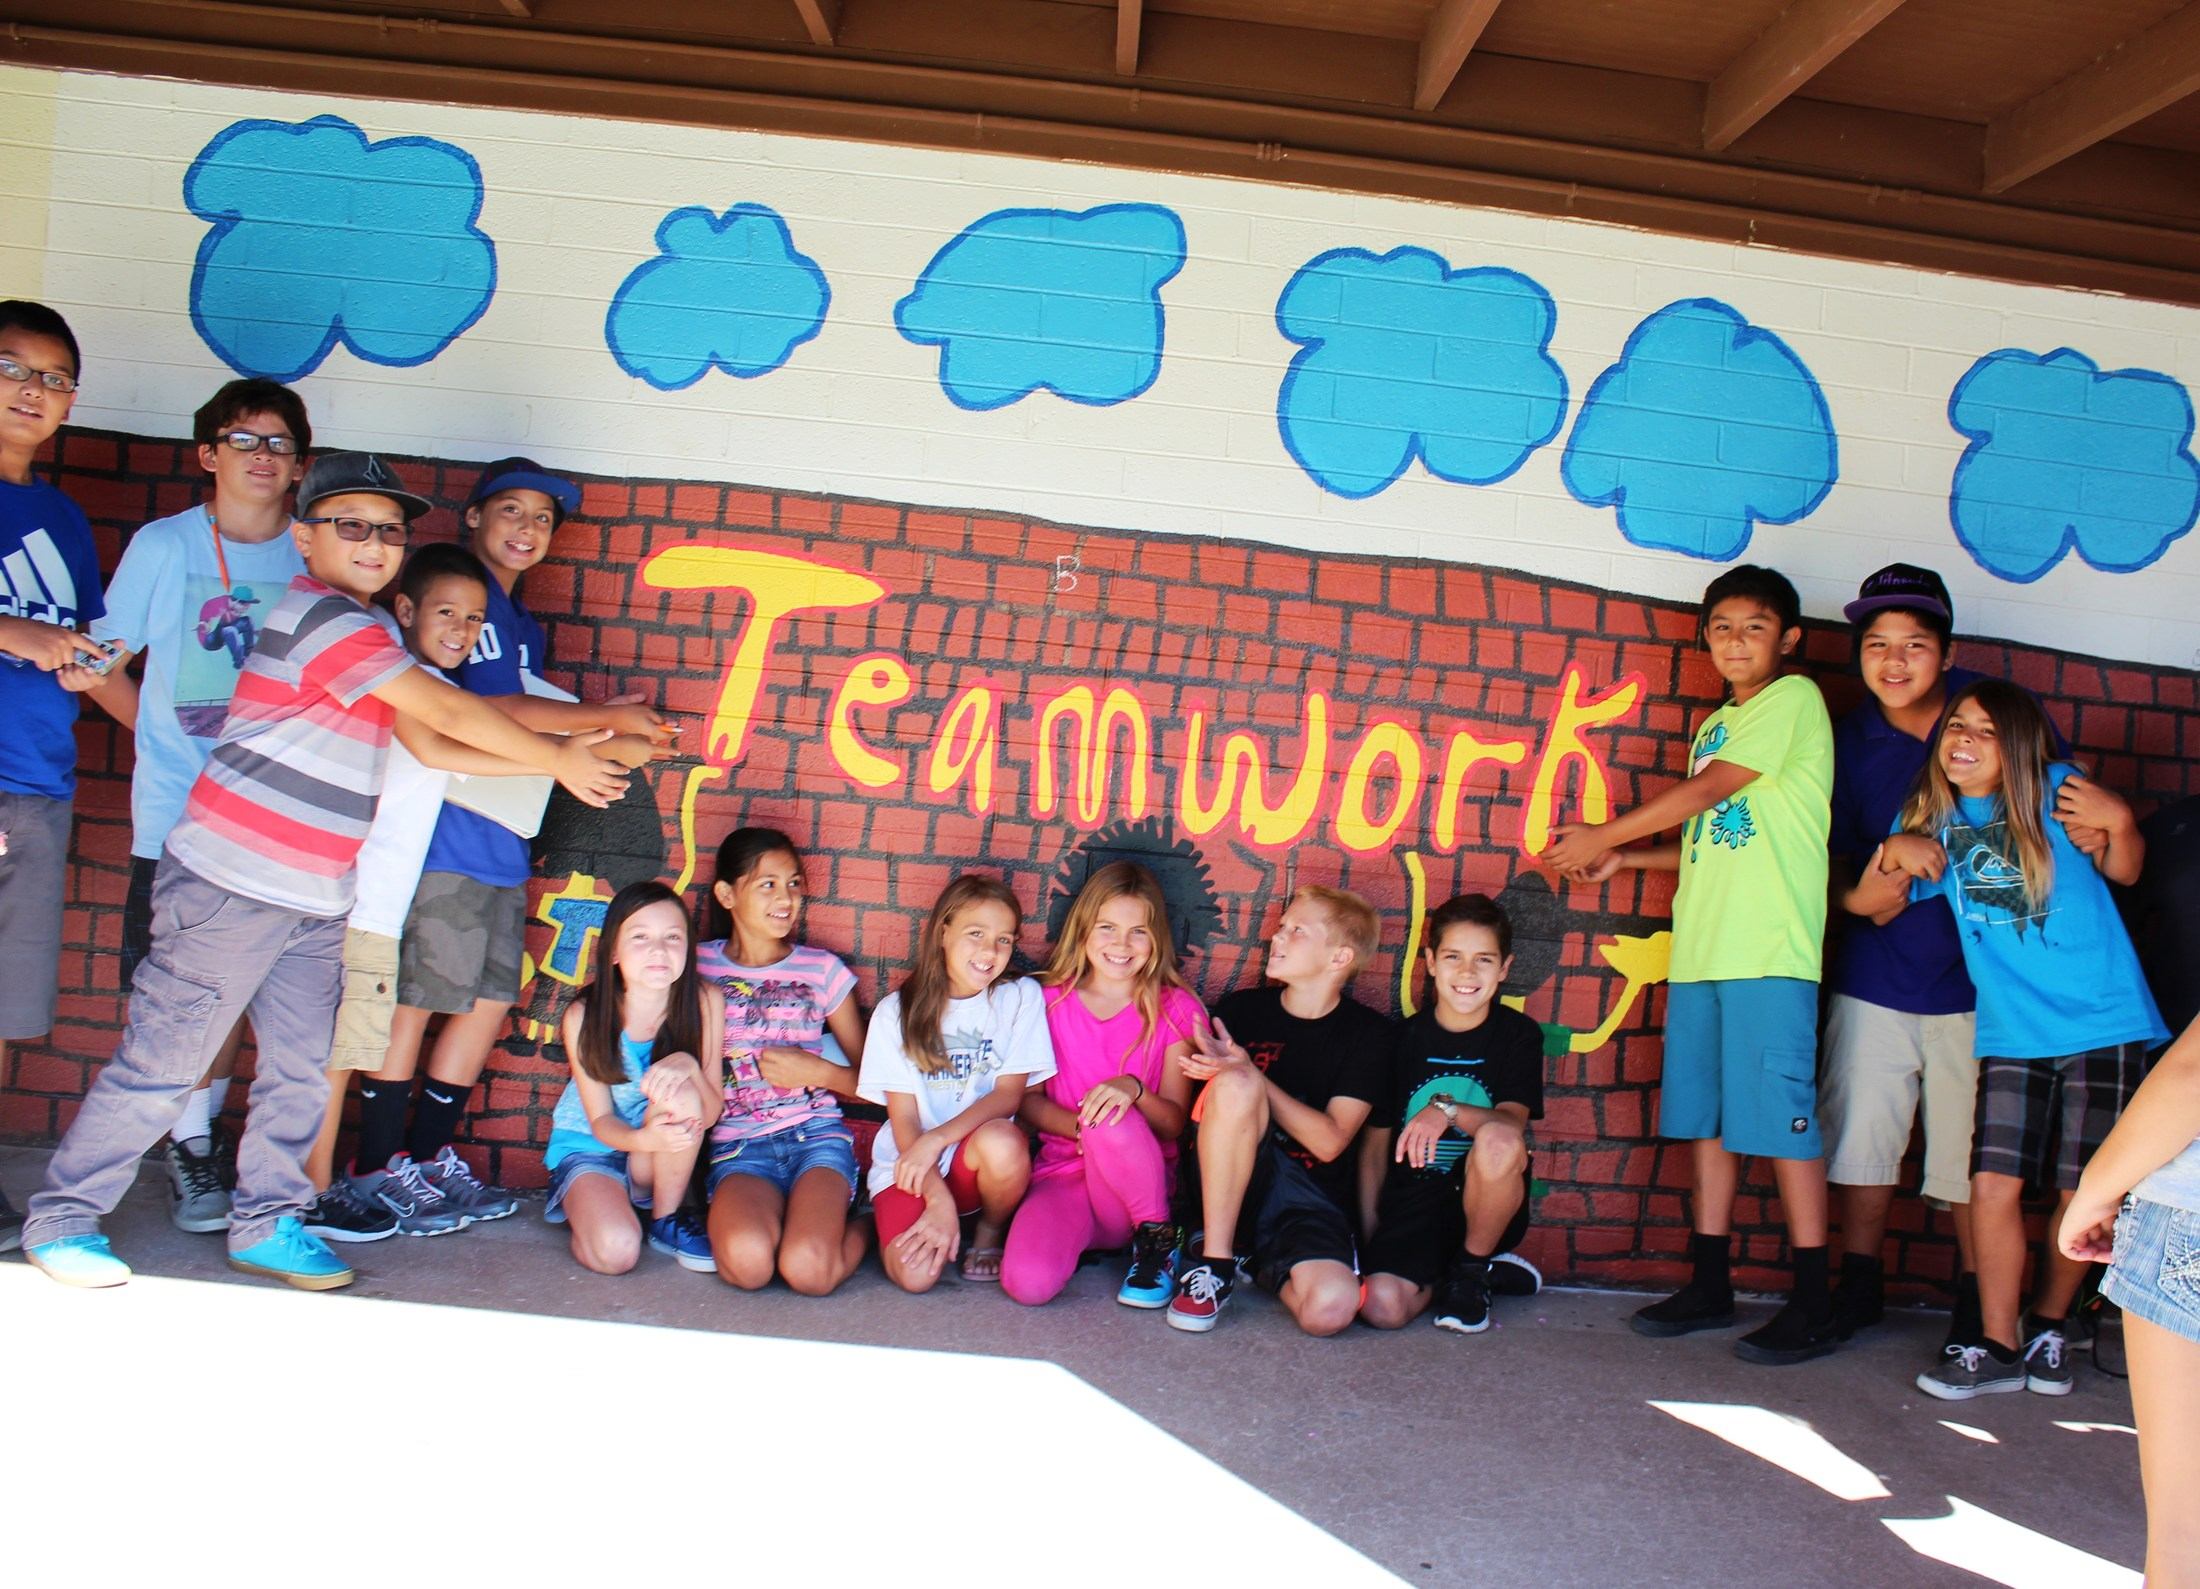 WES Teamwork wall painting sign